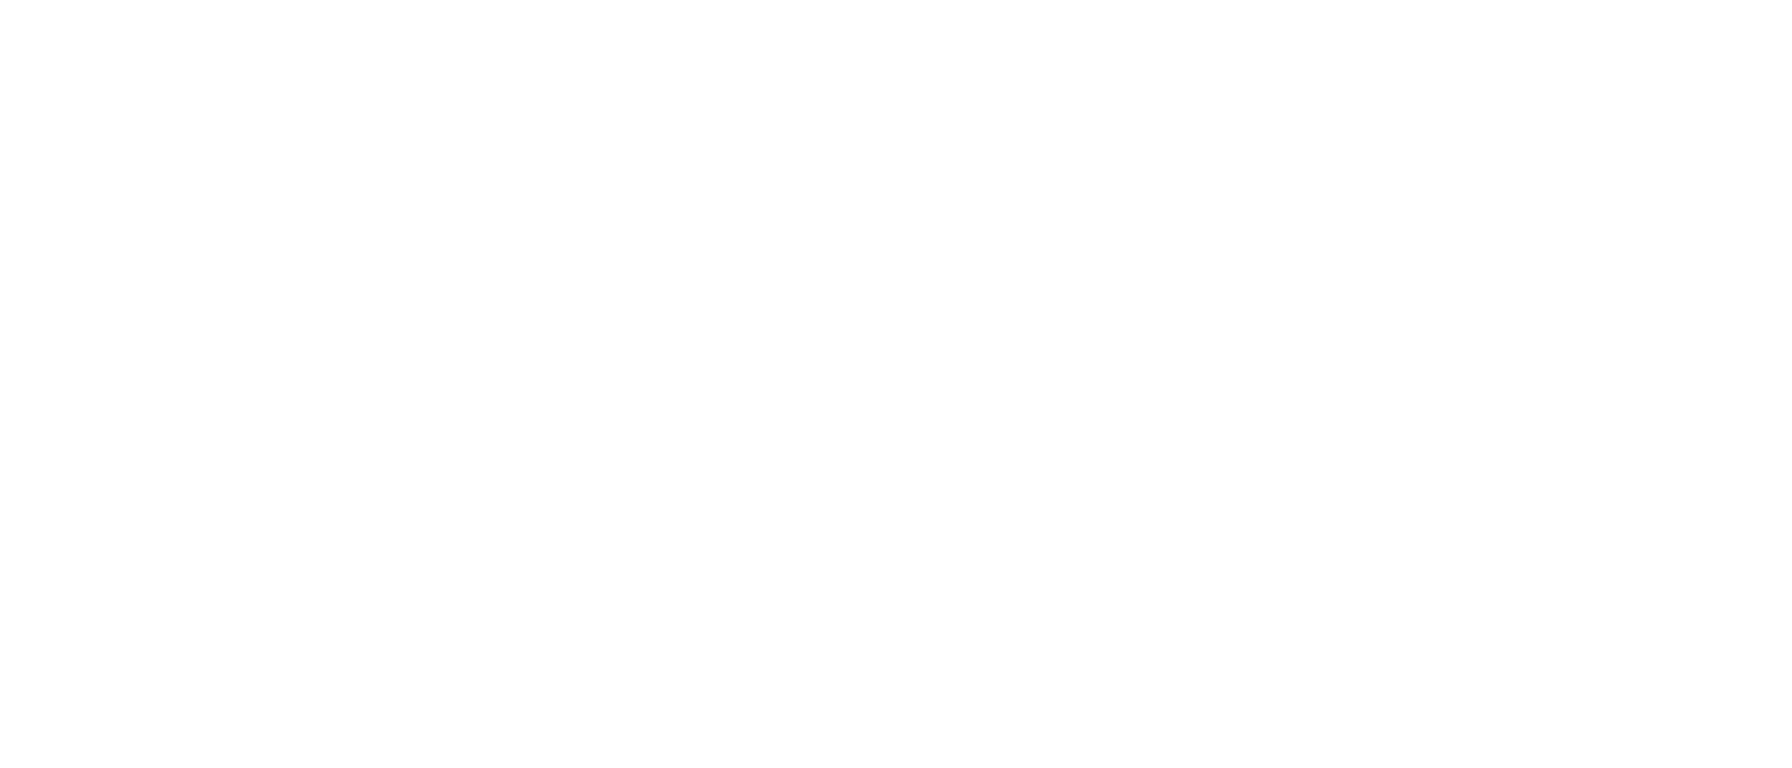 Joen Digimedia